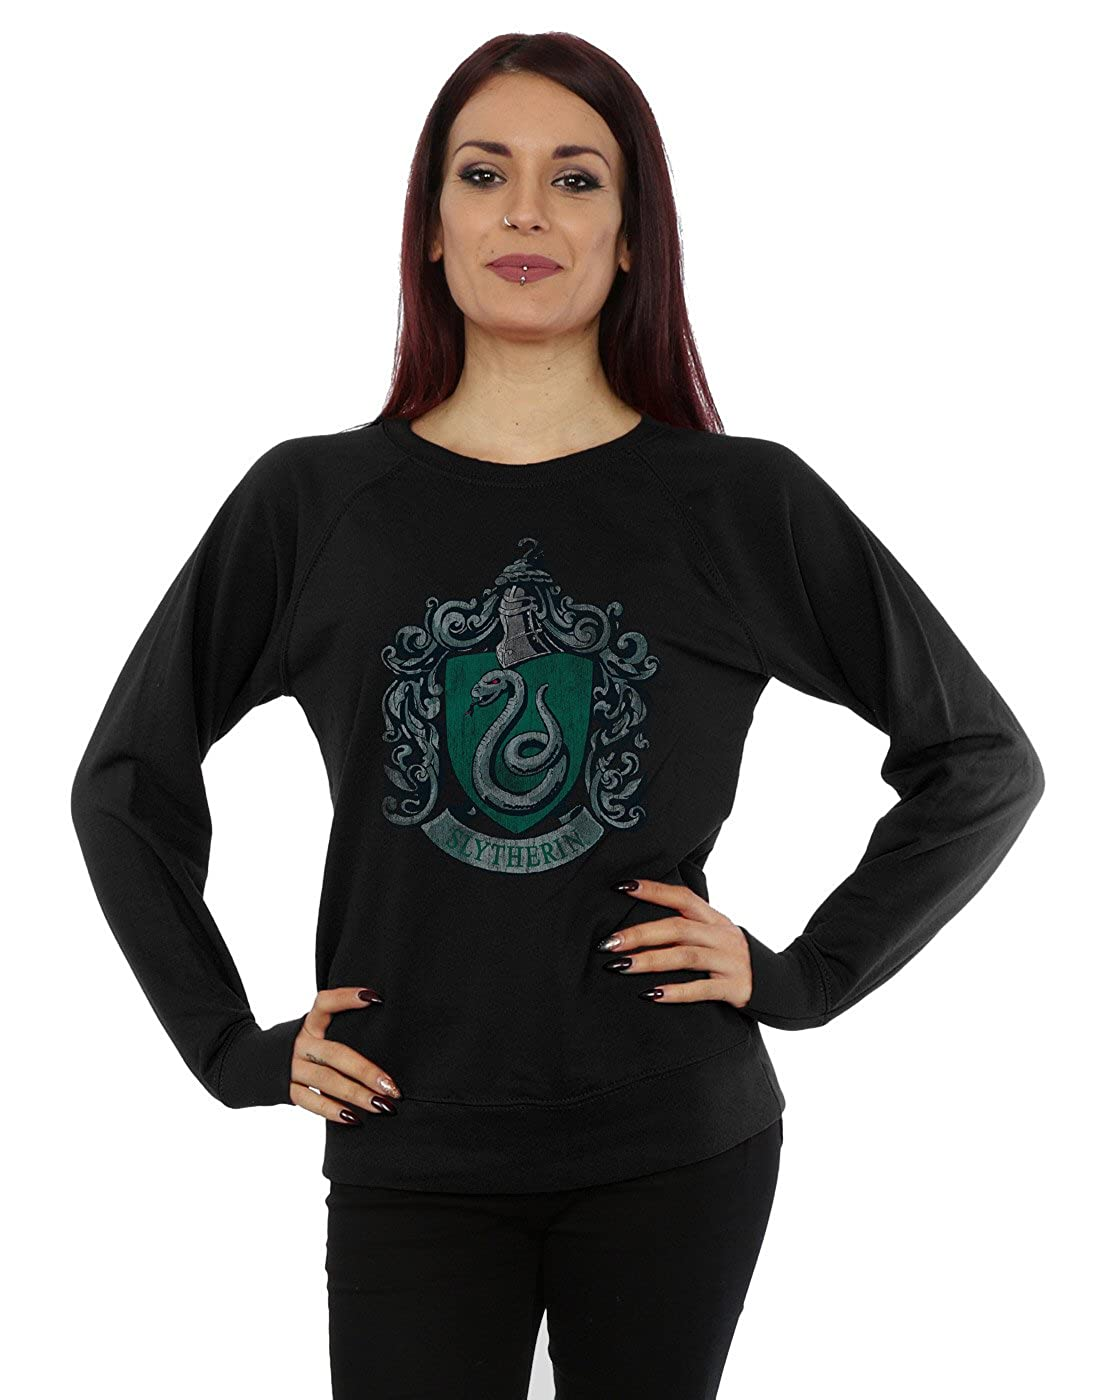 HARRY POTTER Mujer Slytherin Distressed Crest Camisa De Entrenamiento